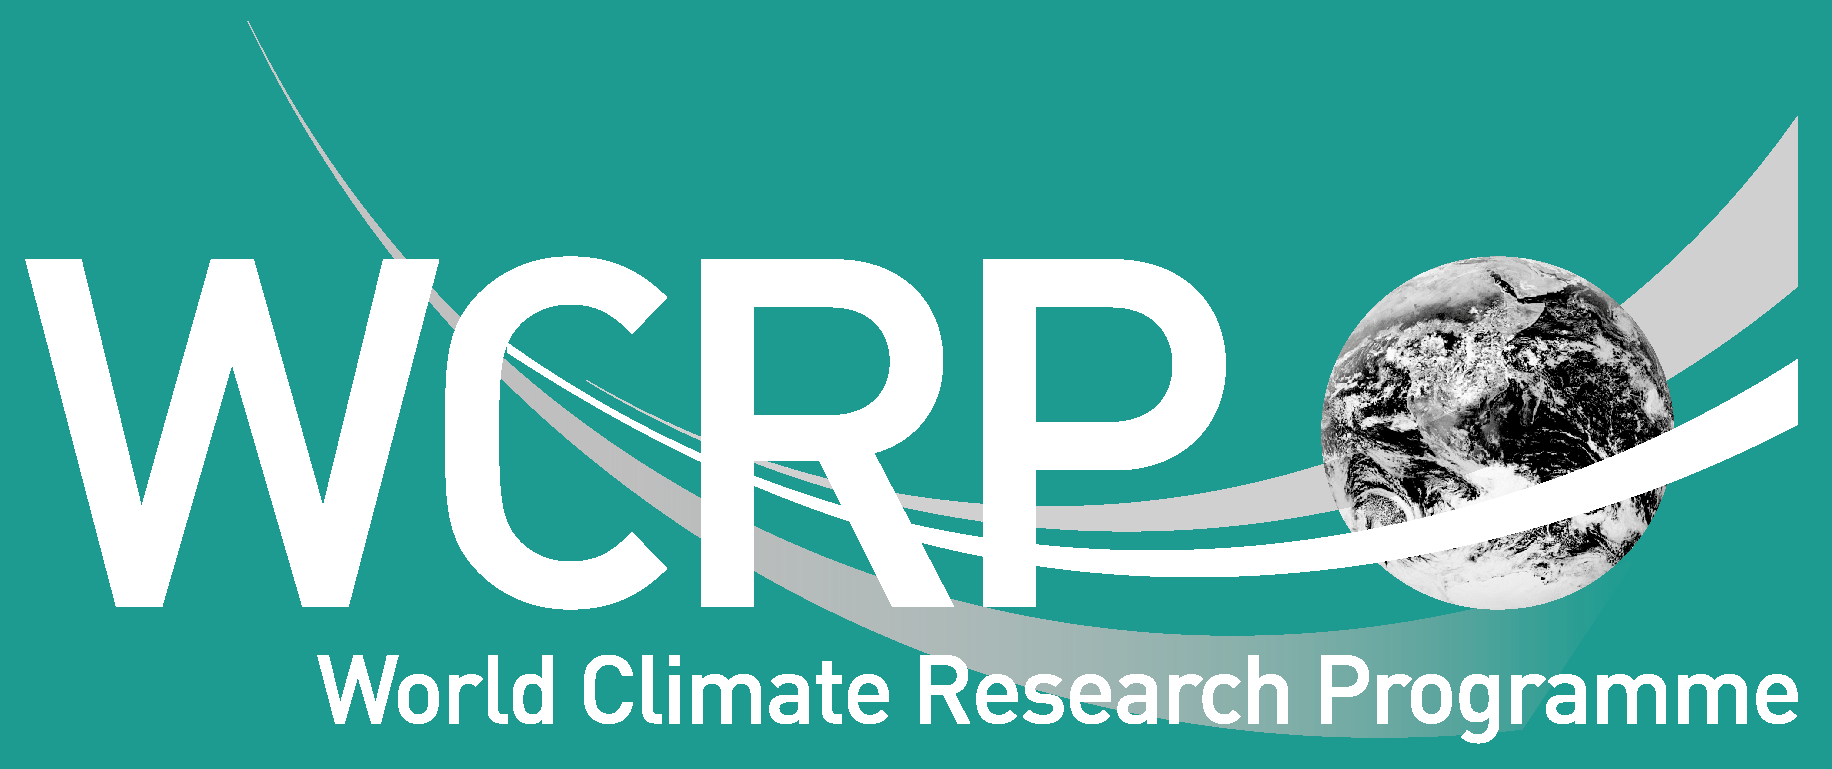 WCRP logo white example